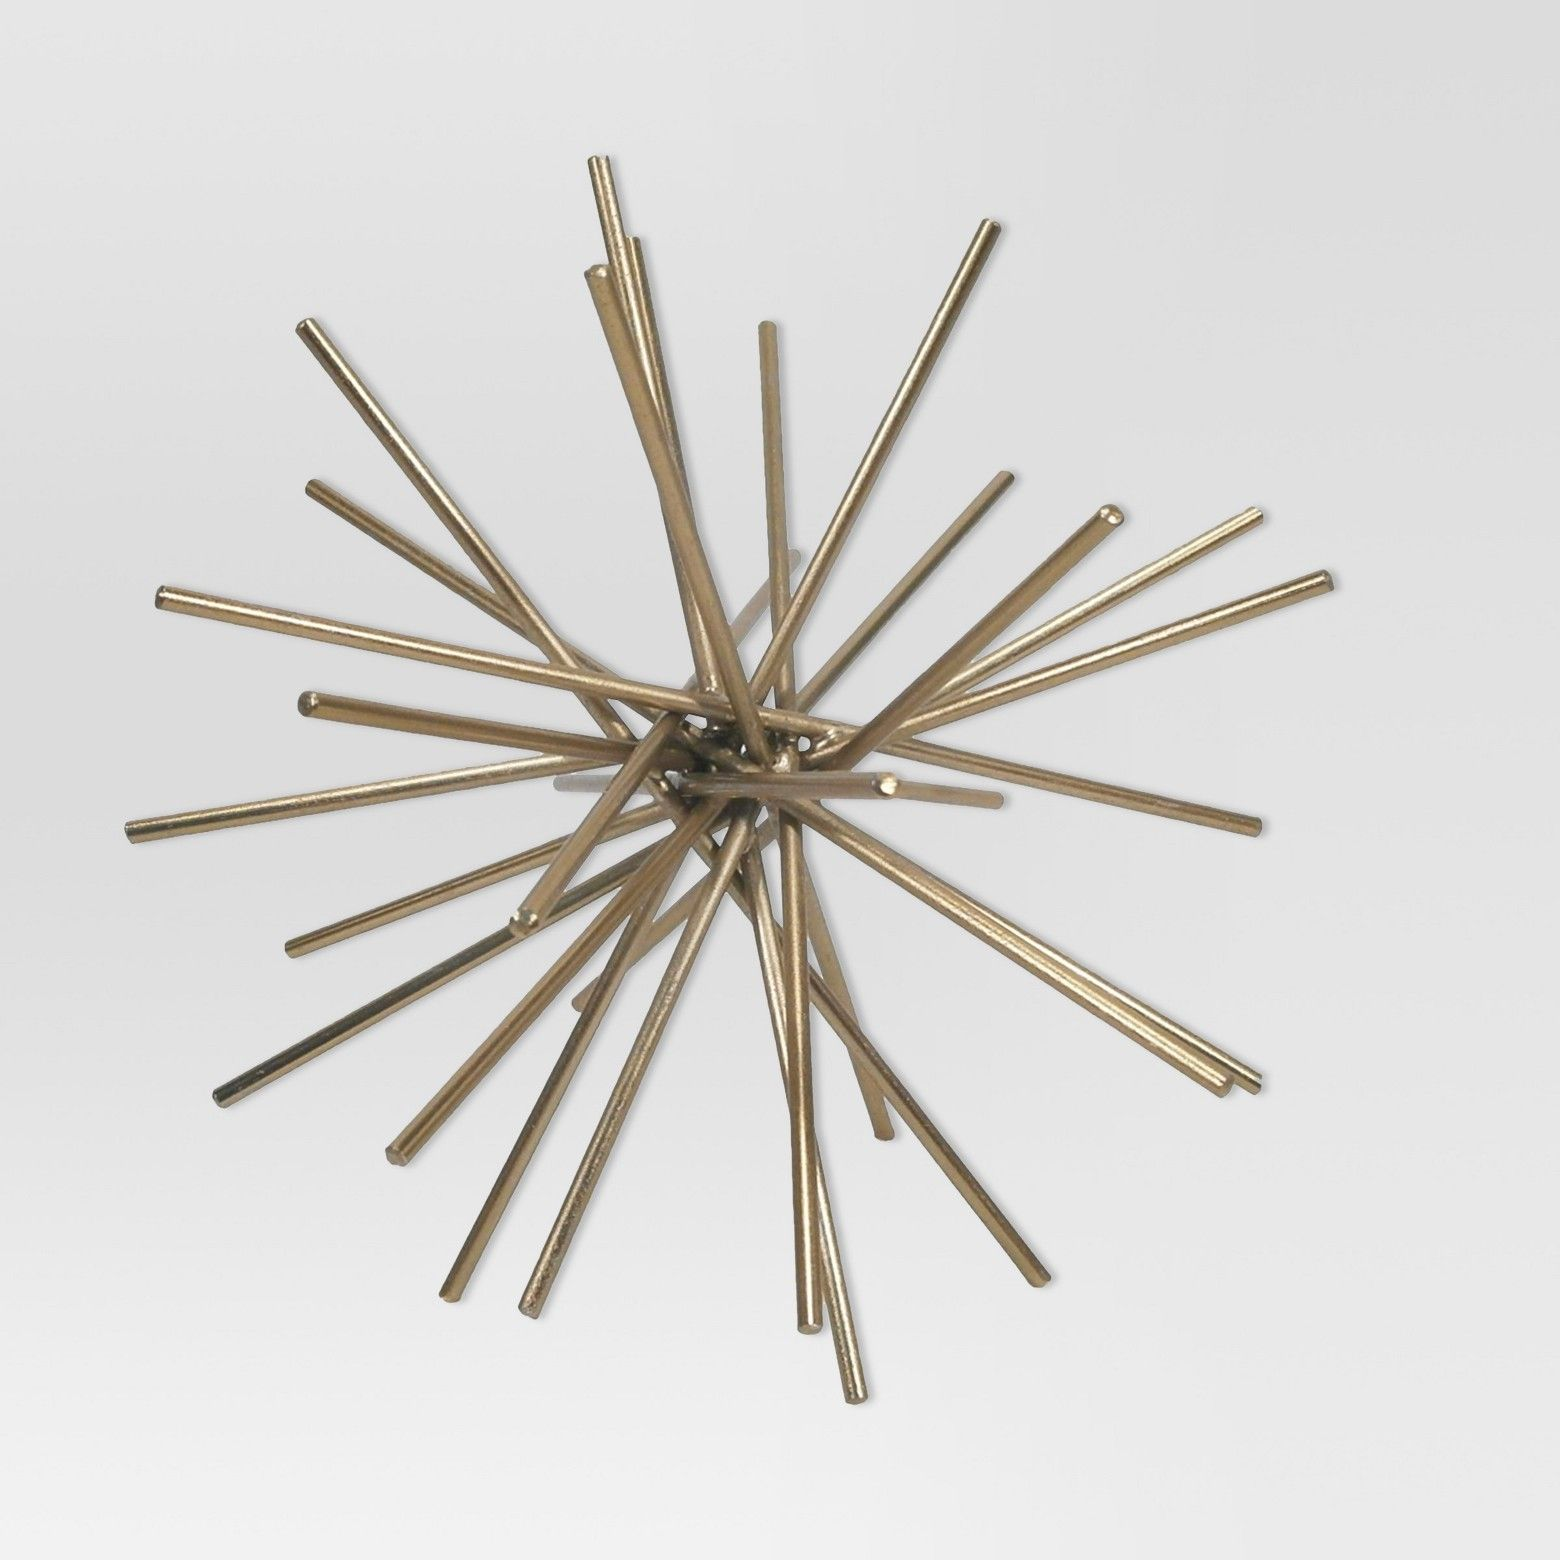 Geo burst wall décor gold large project 62 target